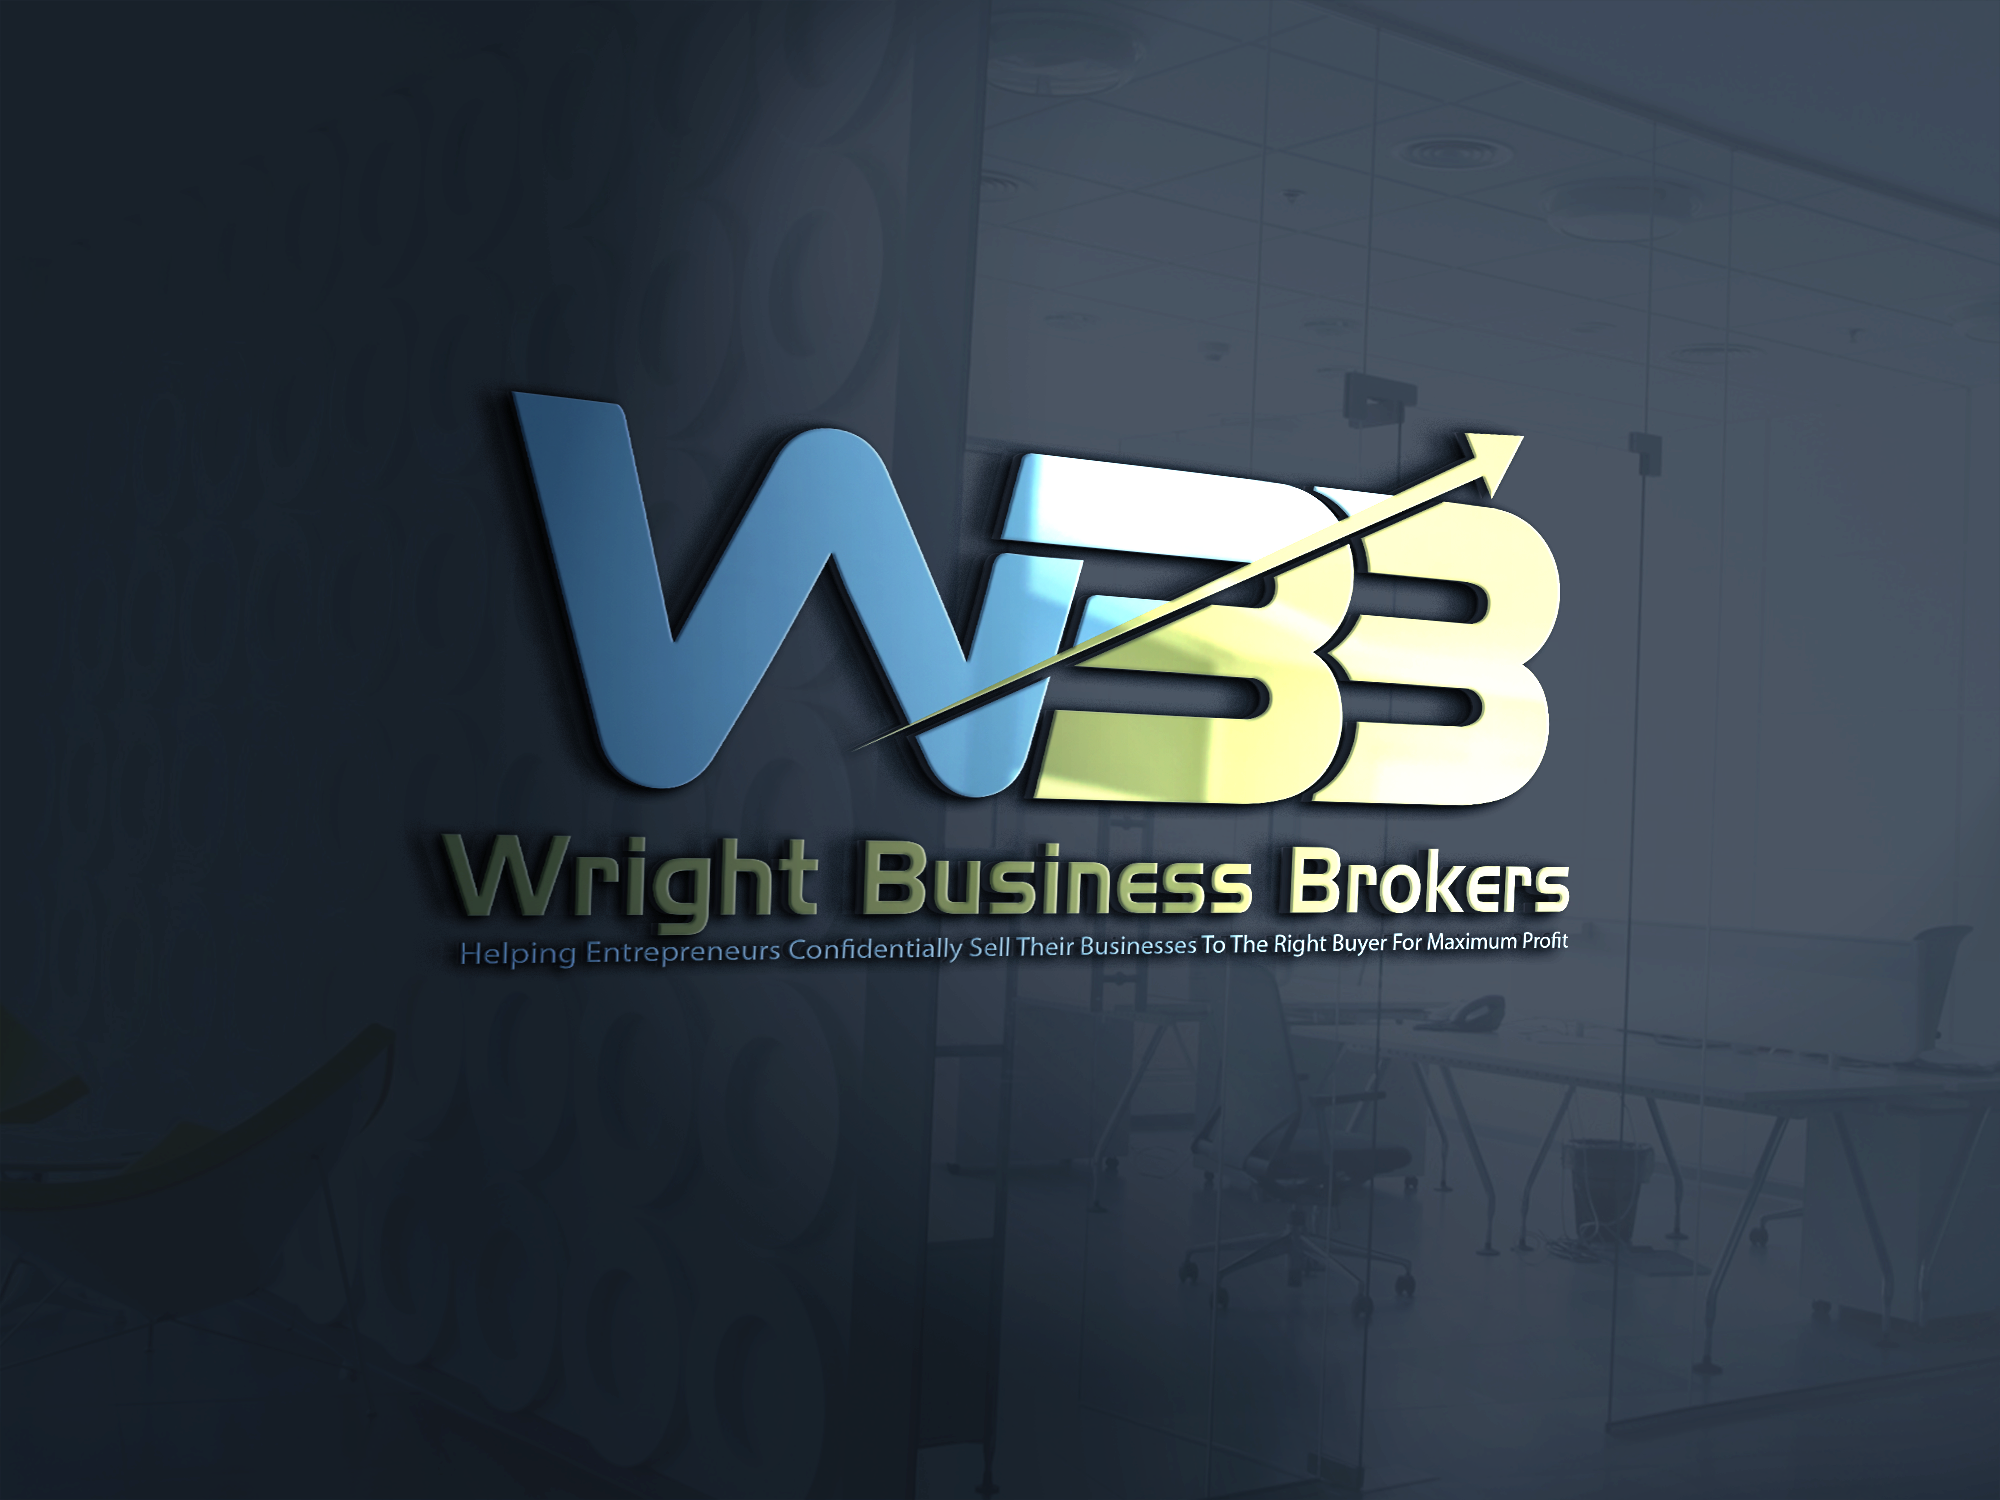 Wayne Wright - Business Broker and Business Coach image 4